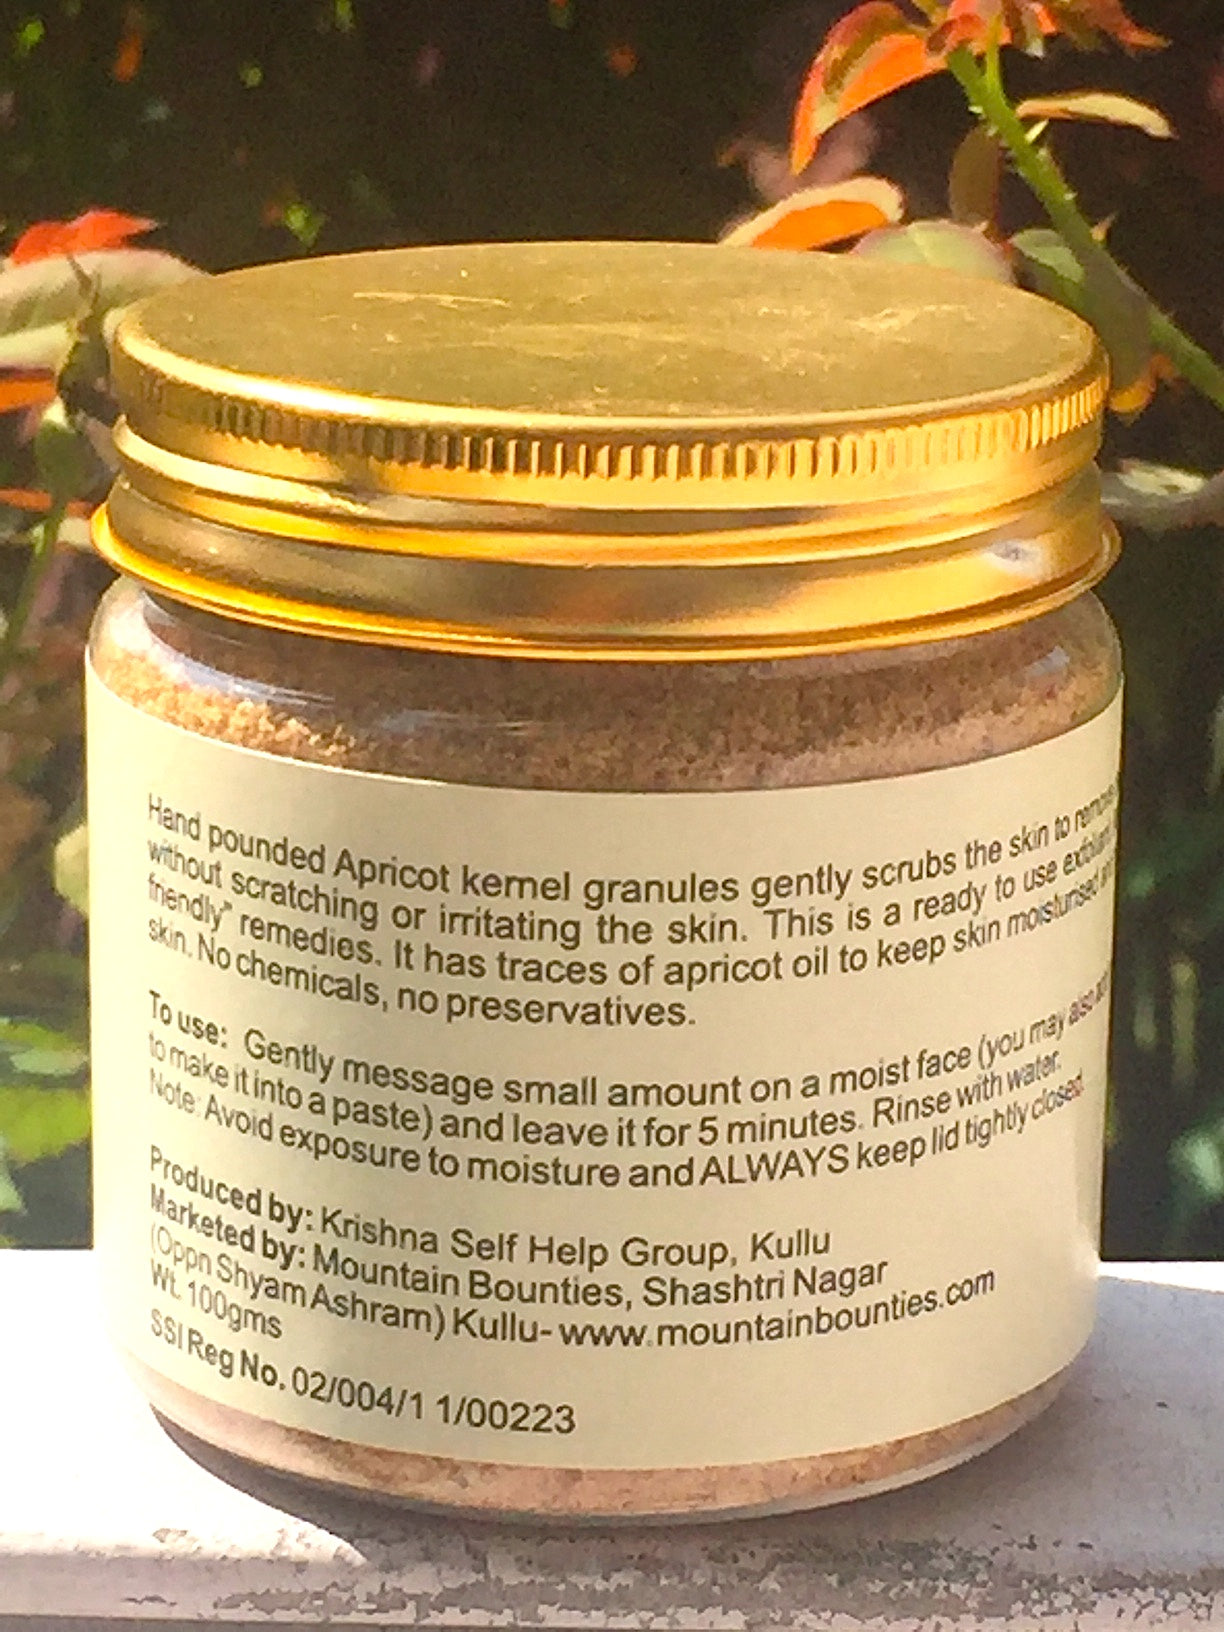 Handmade Apricot Facial Scrub from Himachal.